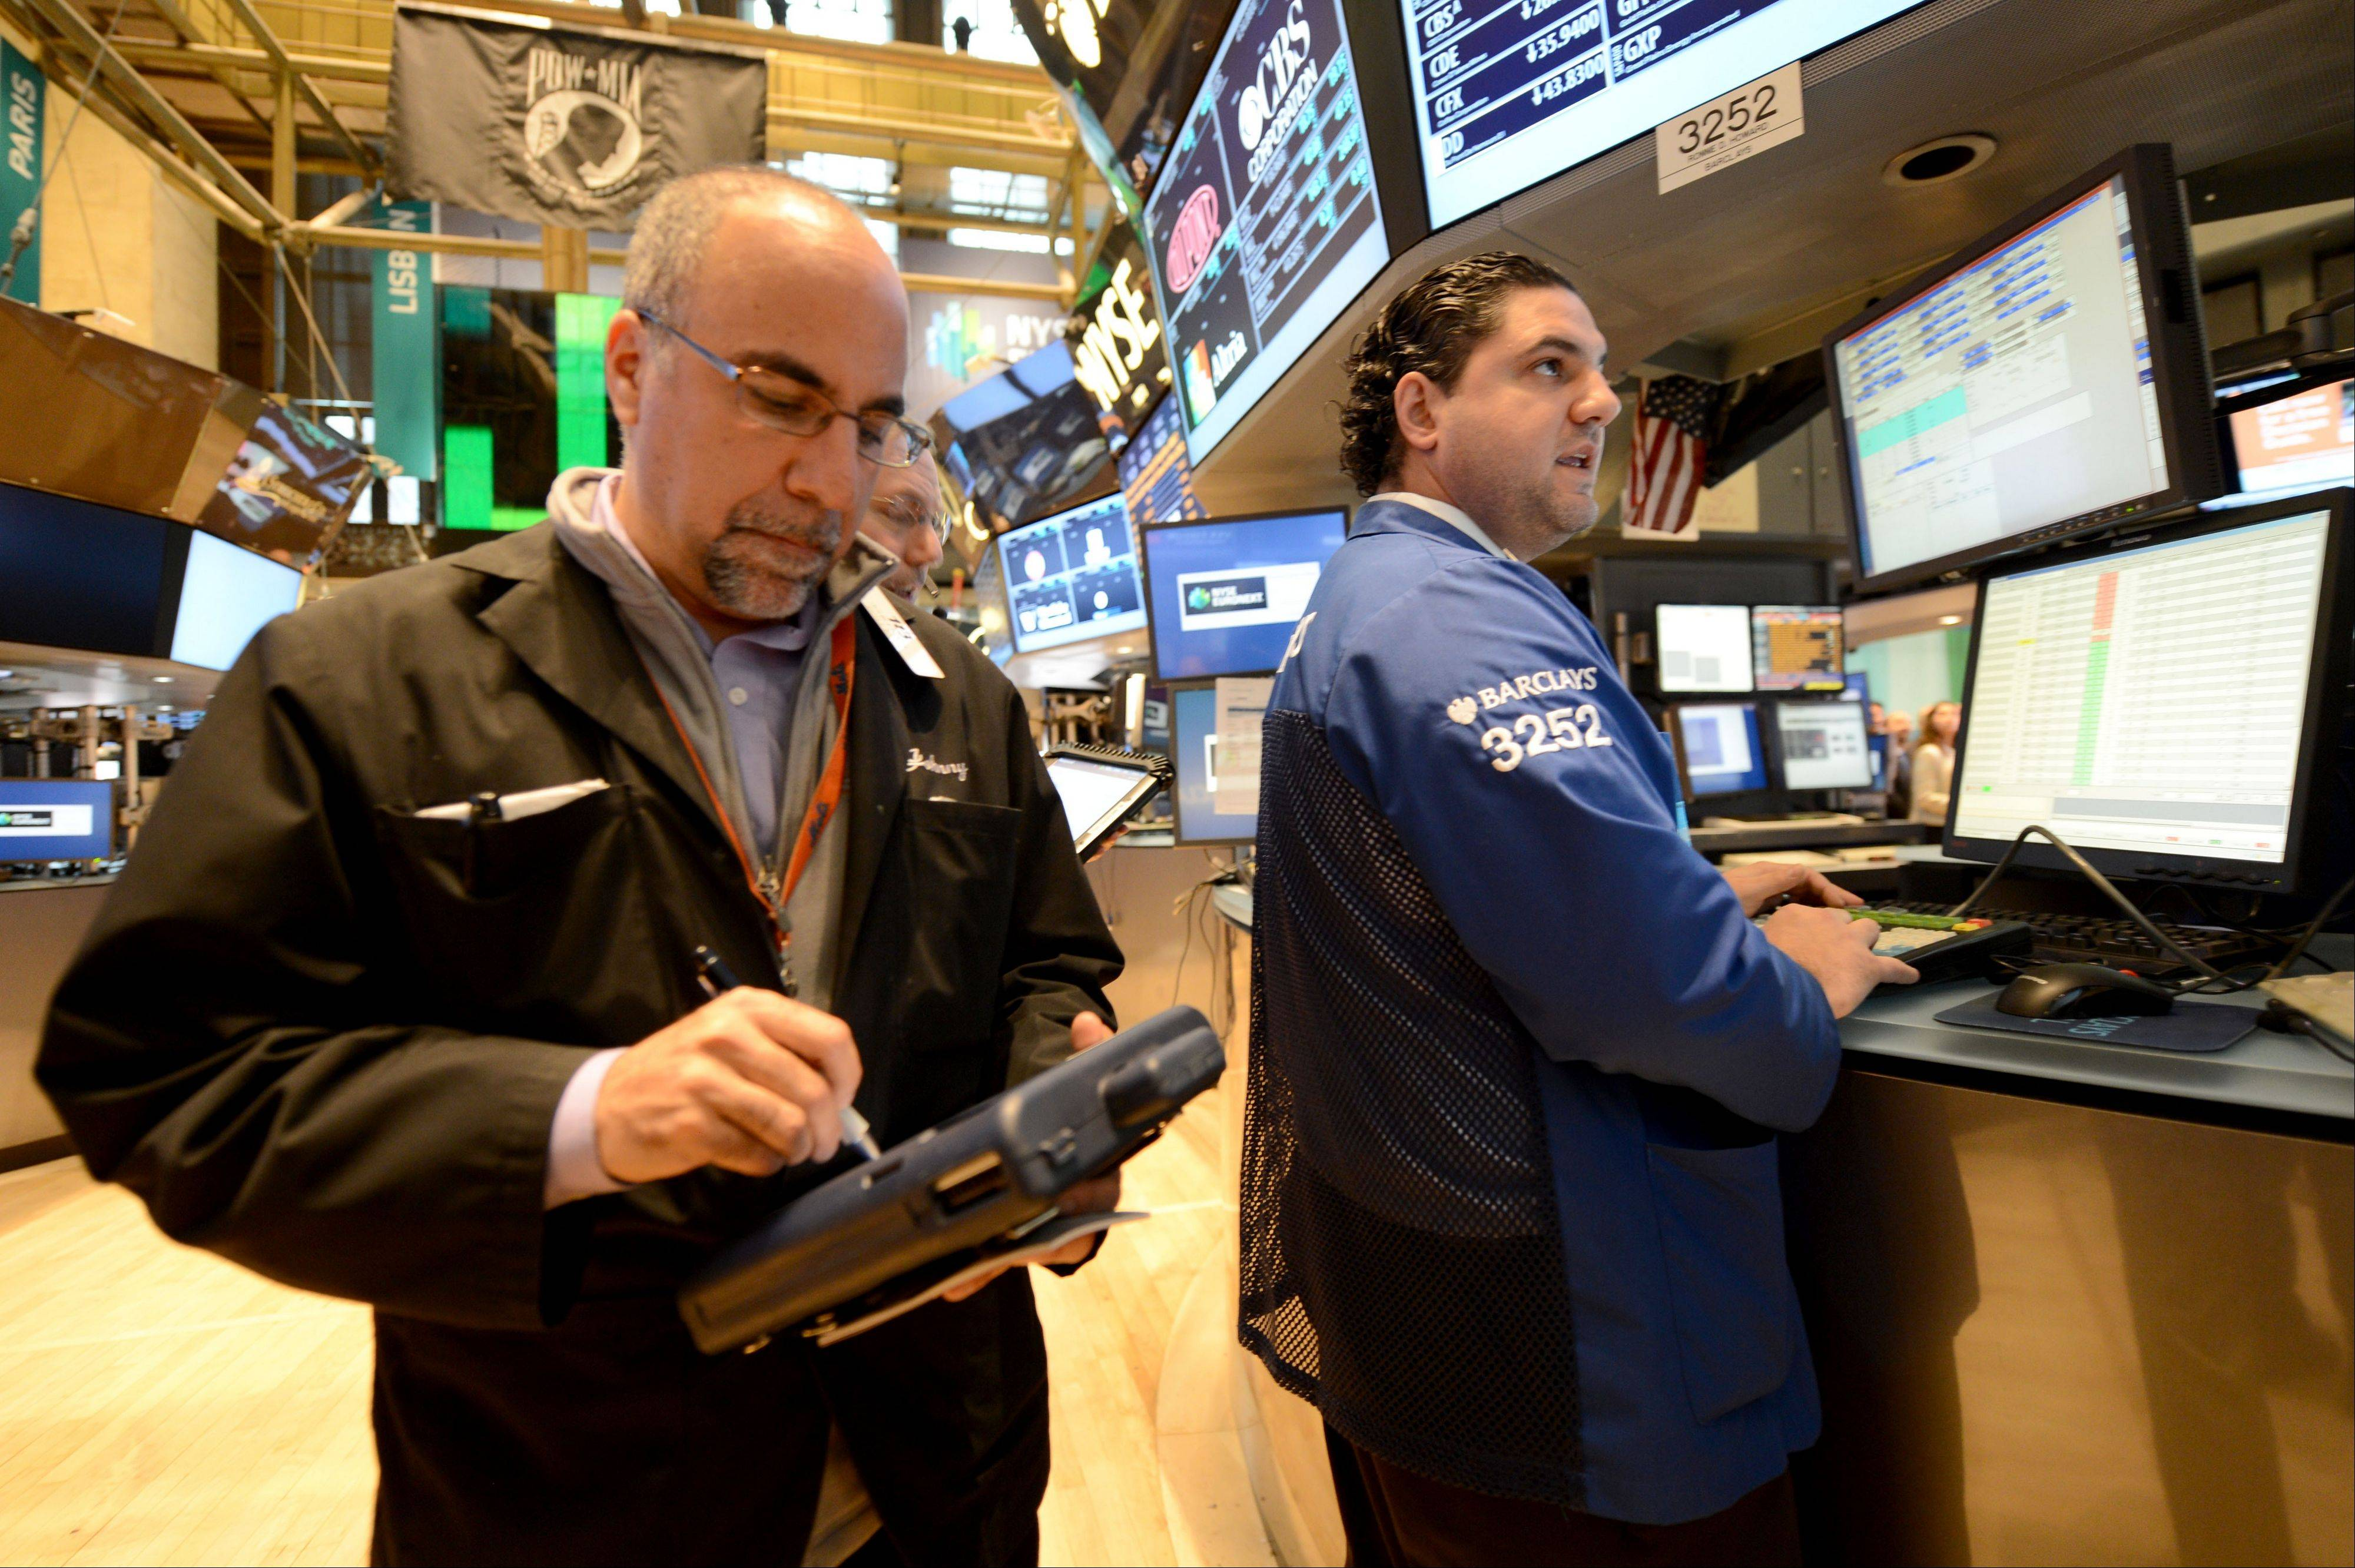 U.S. stocks declined, extending losses since the re-election of President Barack Obama and sending the Dow Jones Industrial Average to the lowest level since July, amid concern about Greece's financial aid payment.